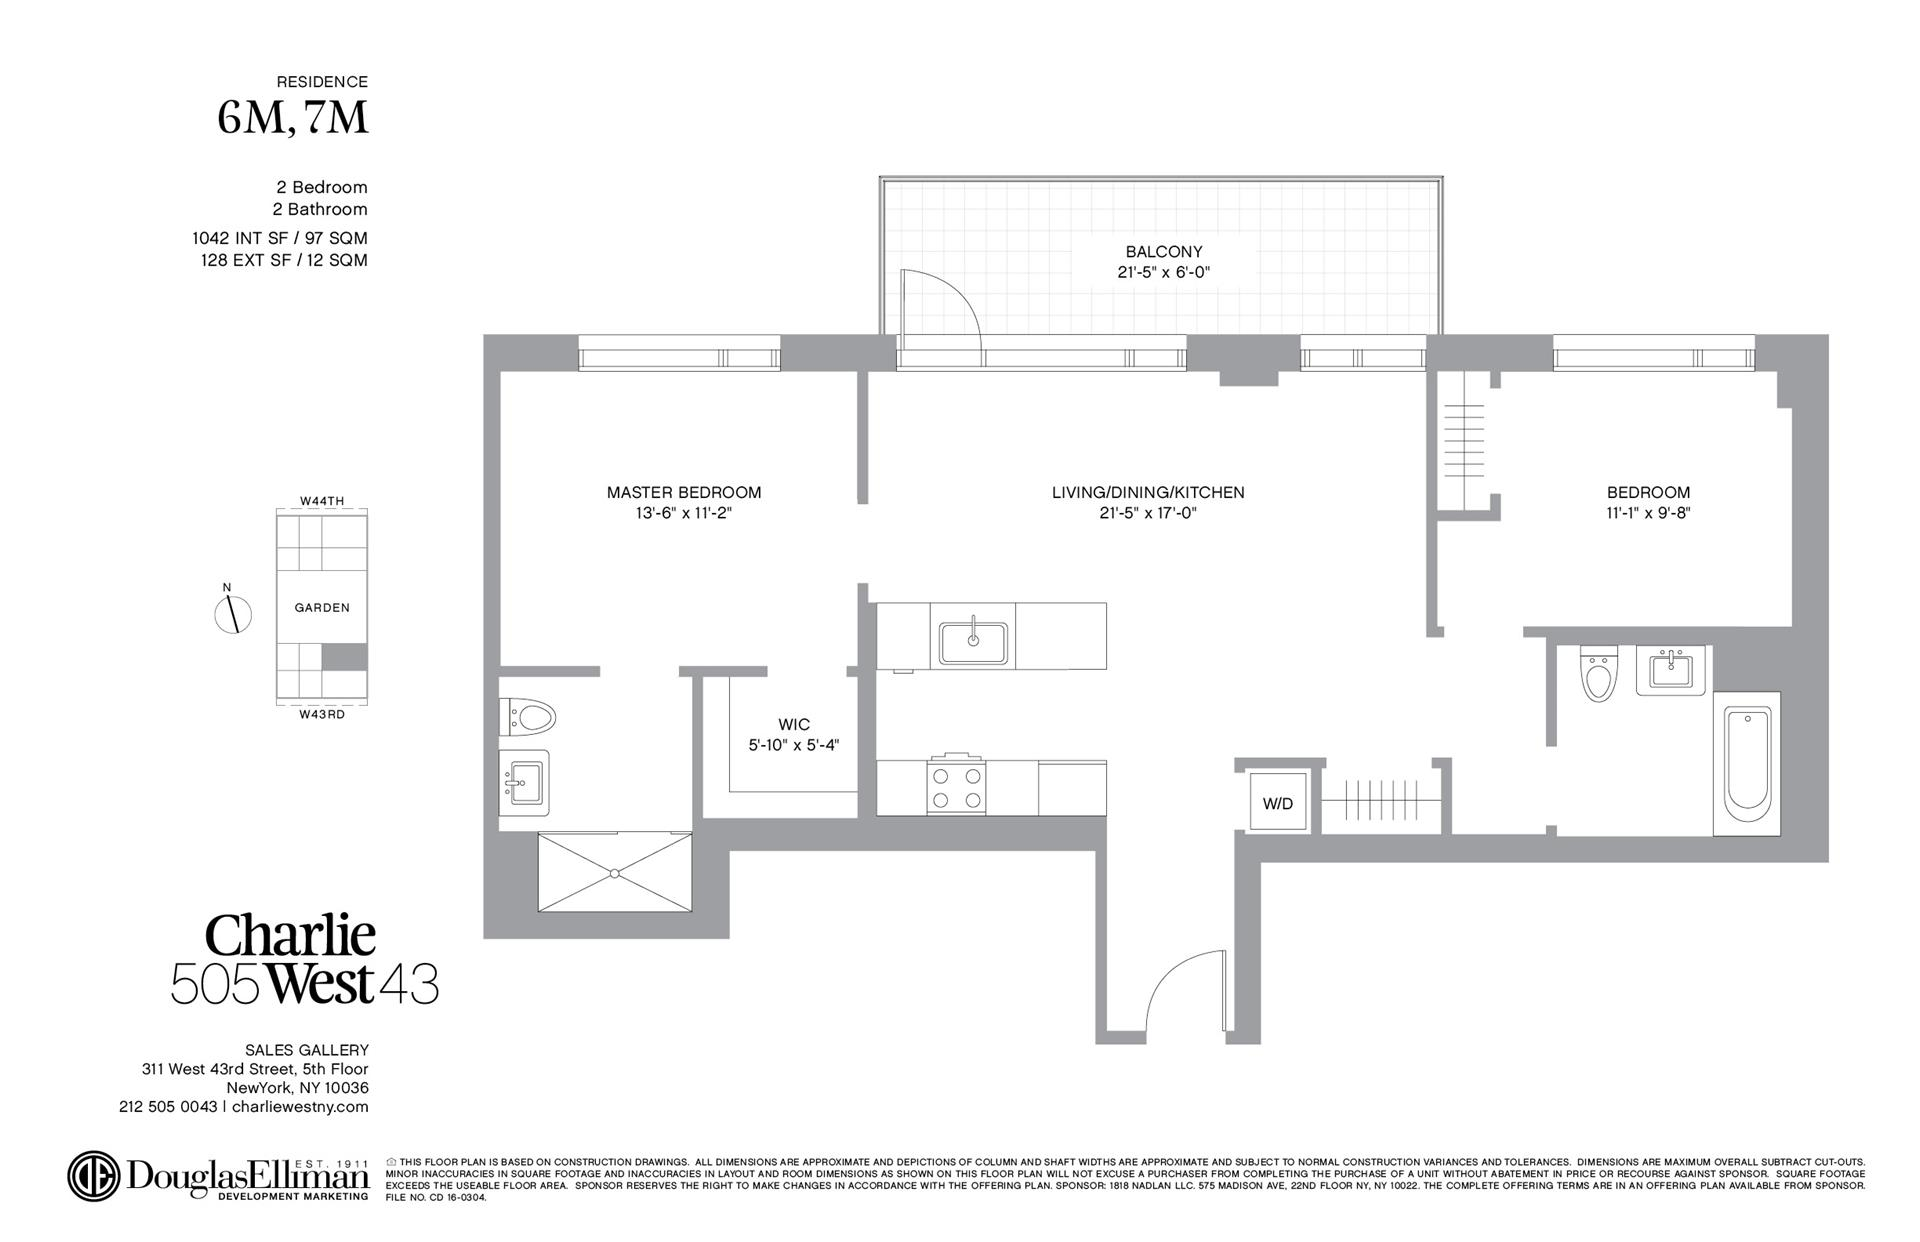 Floor plan of 505 West 43rd St, 6M - Clinton, New York